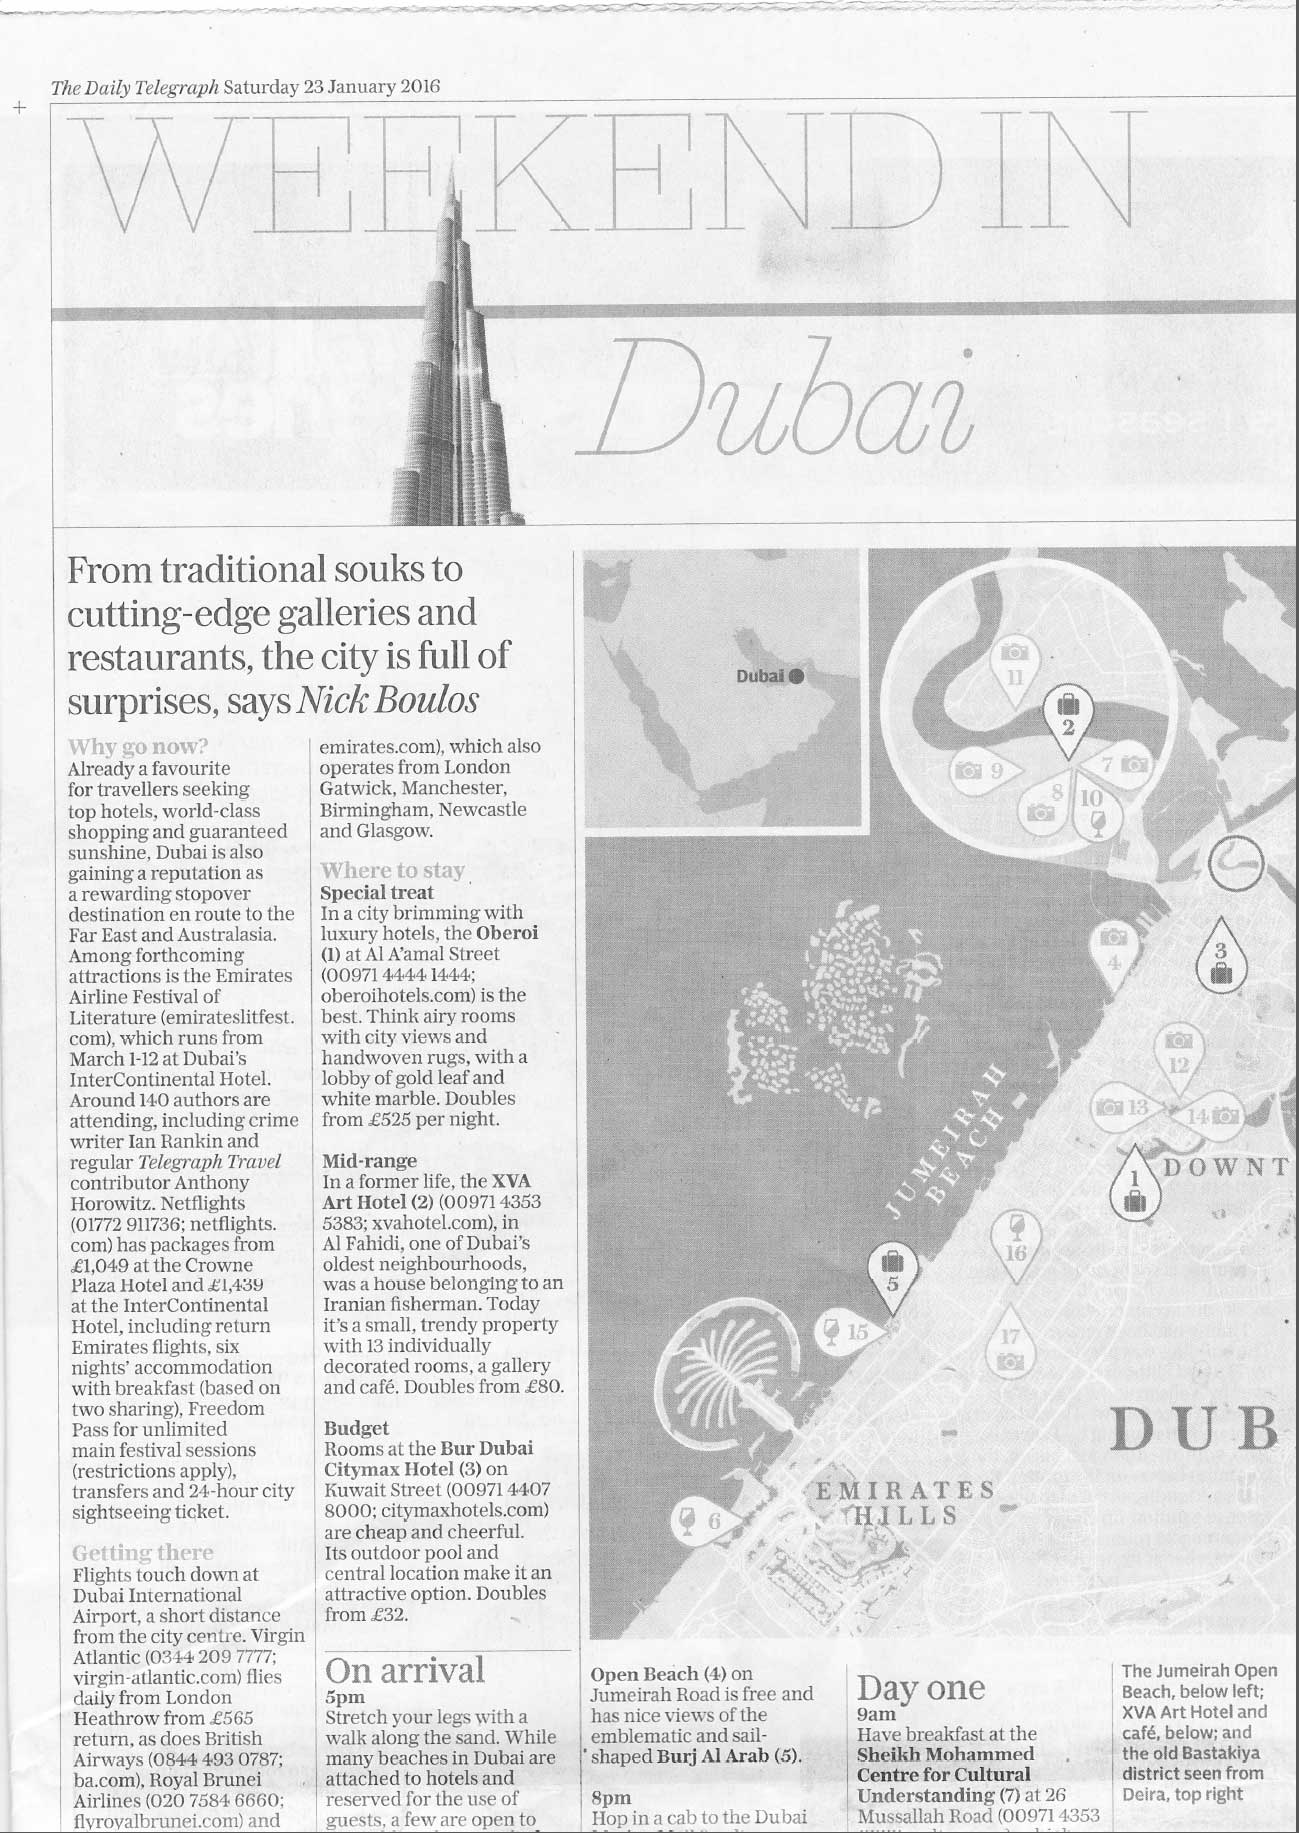 The Daily Telegraph 23.01.2016